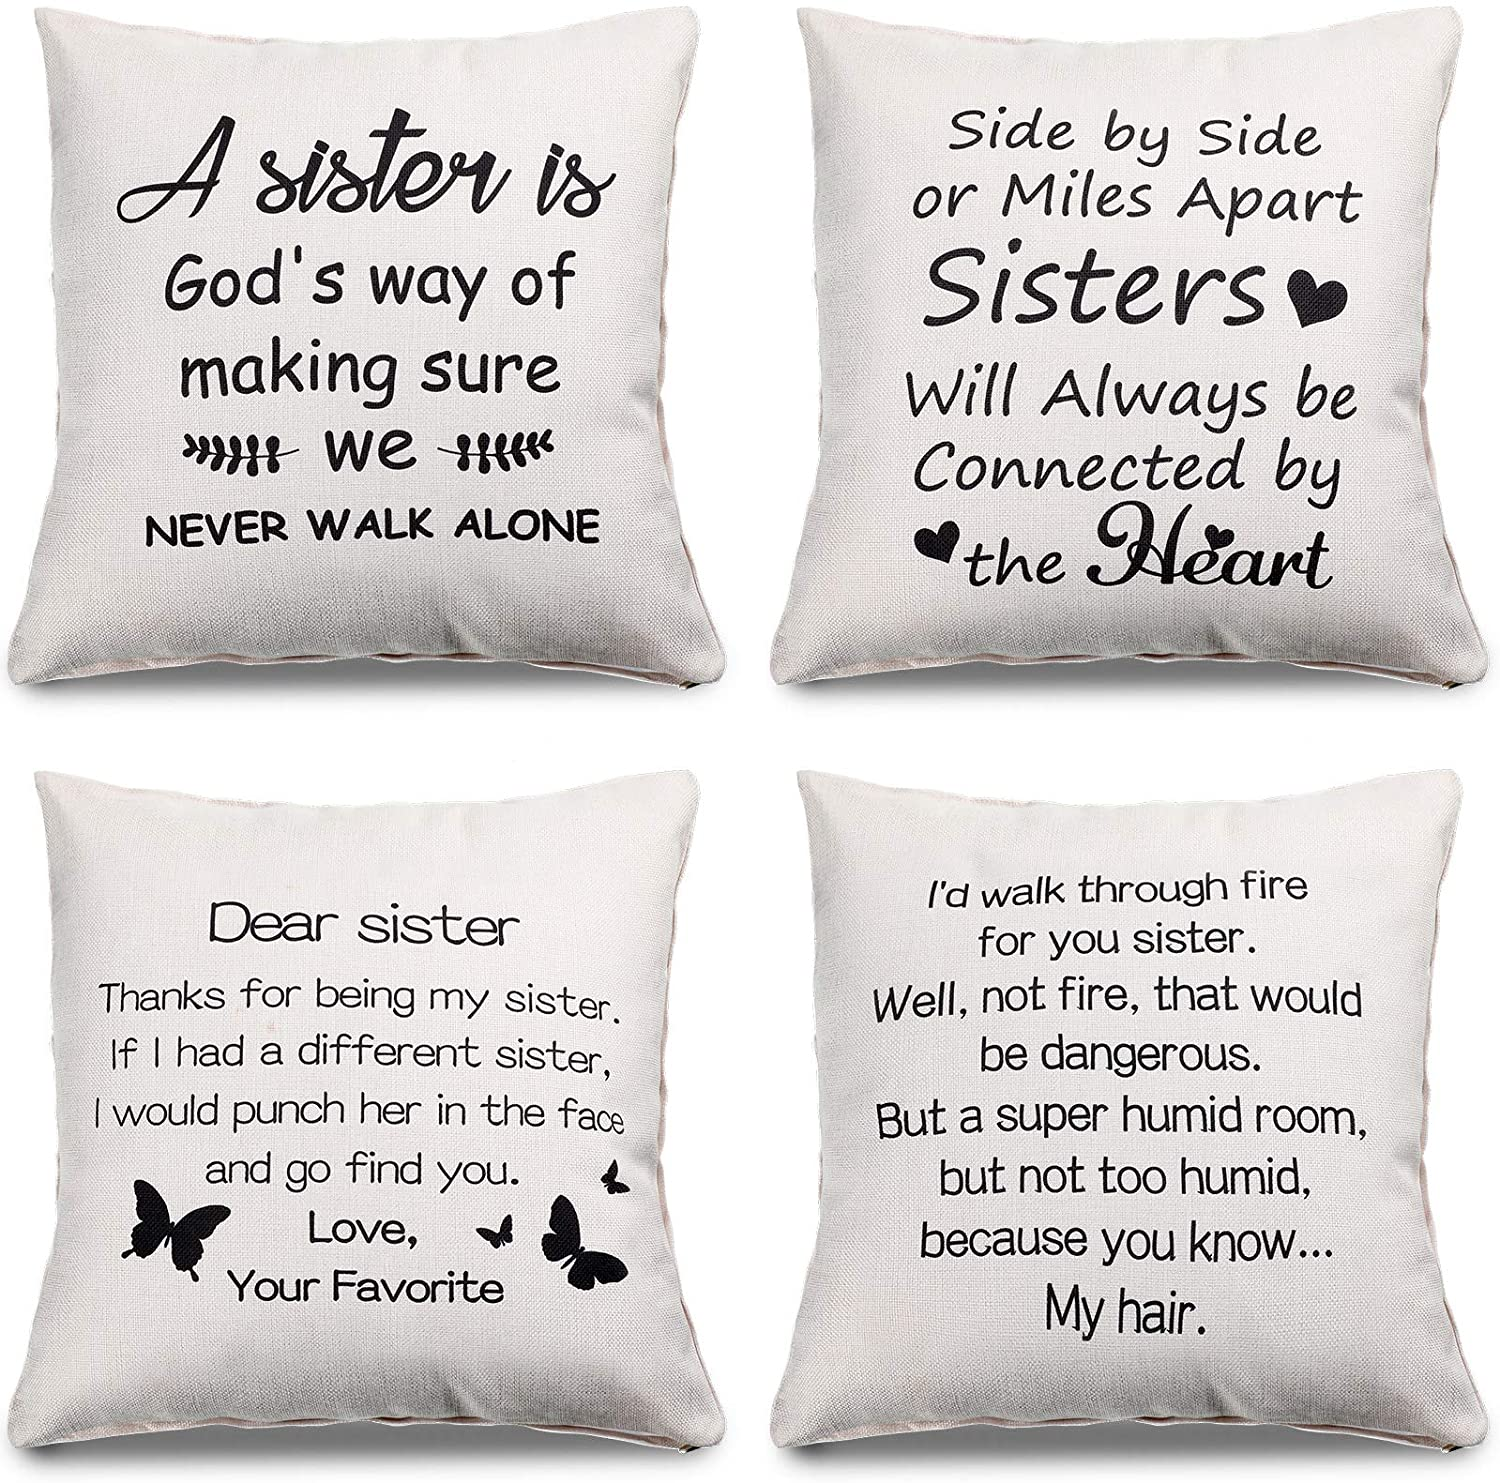 4 Pieces Sister Pillow Covers, Novelty Gifts for Best Sisters, Soul Sister, Friendship Gift Cotton Linen Cushion Cover Pillow Case Cover for Home Chair Sofa Couch Decor, 18 x 18 Inch